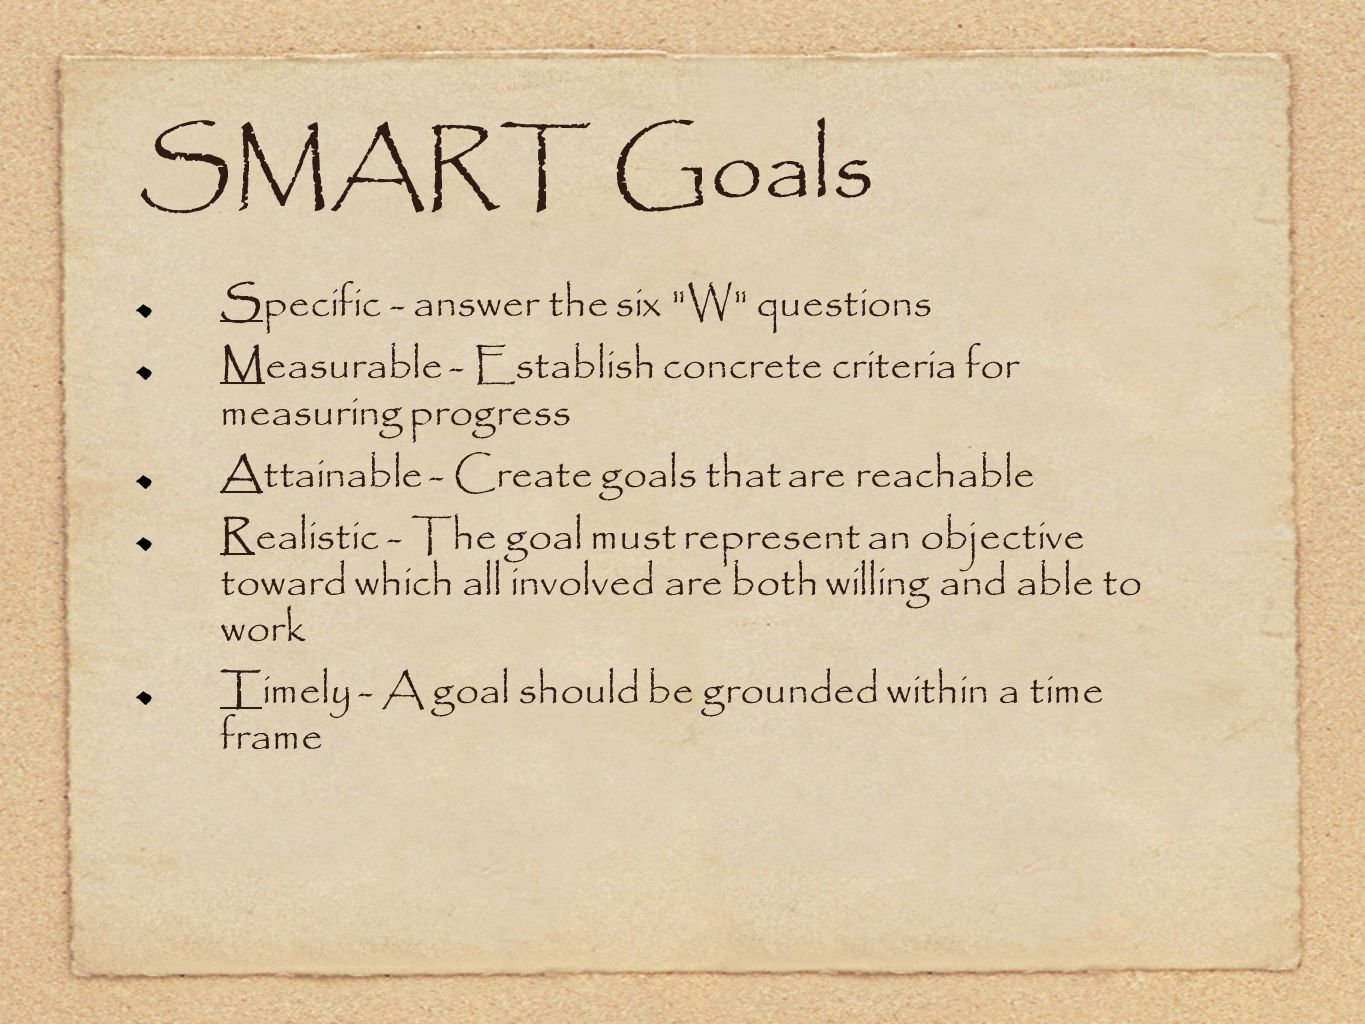 SMART Goals Specific - answer the six W questions Measurable - Establish concrete criteria for measuring progress Attainable - Create goals that are reachable Realistic - The goal must represent an objective toward which all involved are both willing and able to work Timely - A goal should be grounded within a time frame